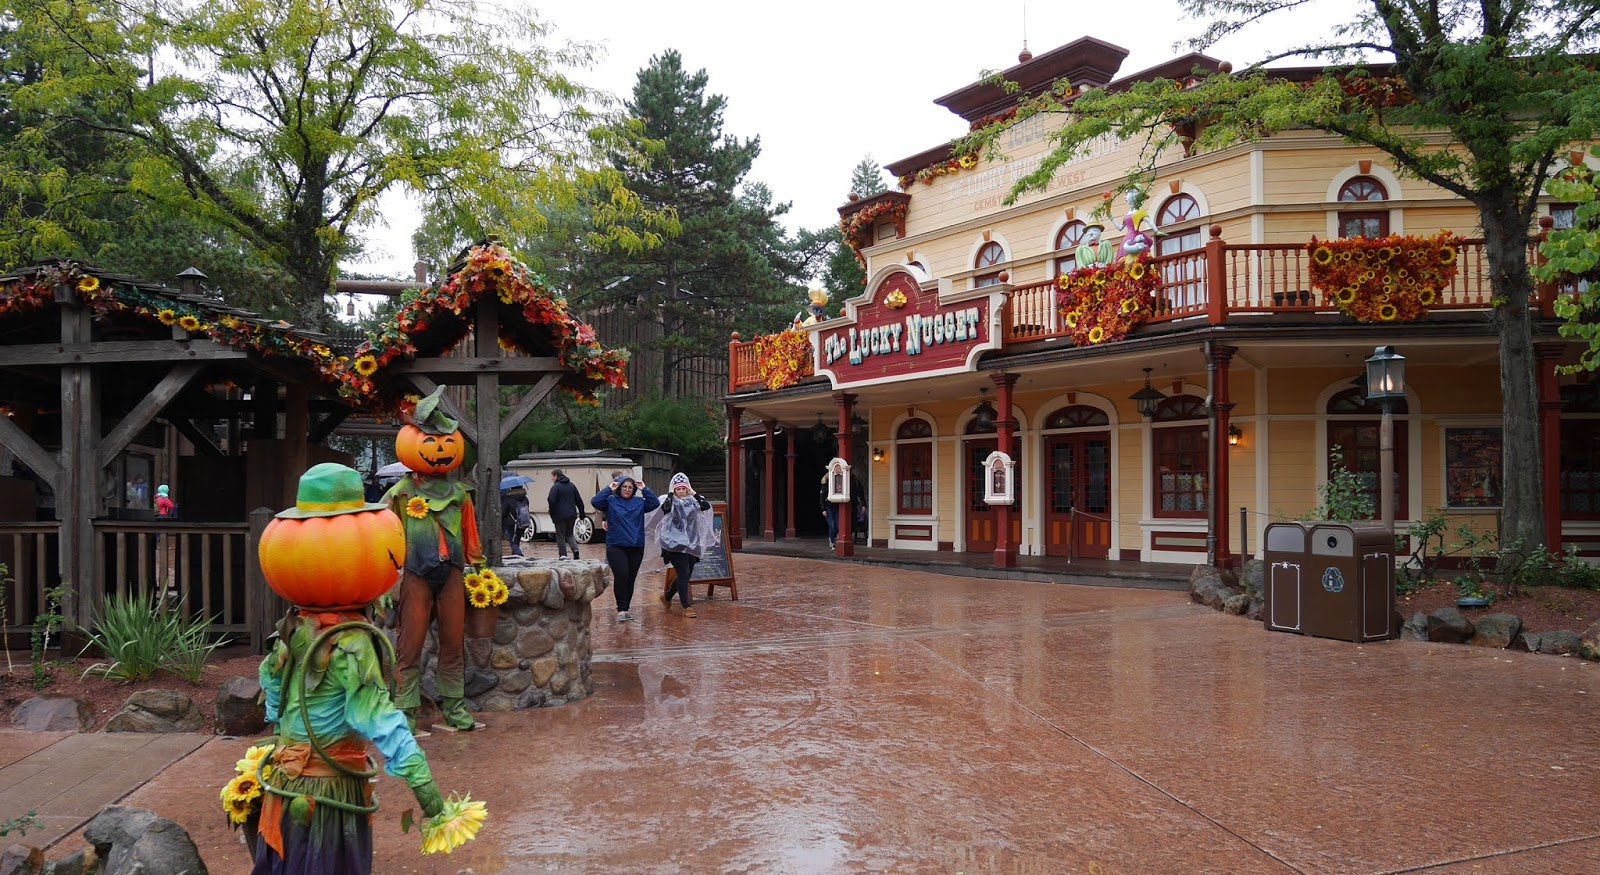 Frontierland during Halloween season, Disneyland Paris